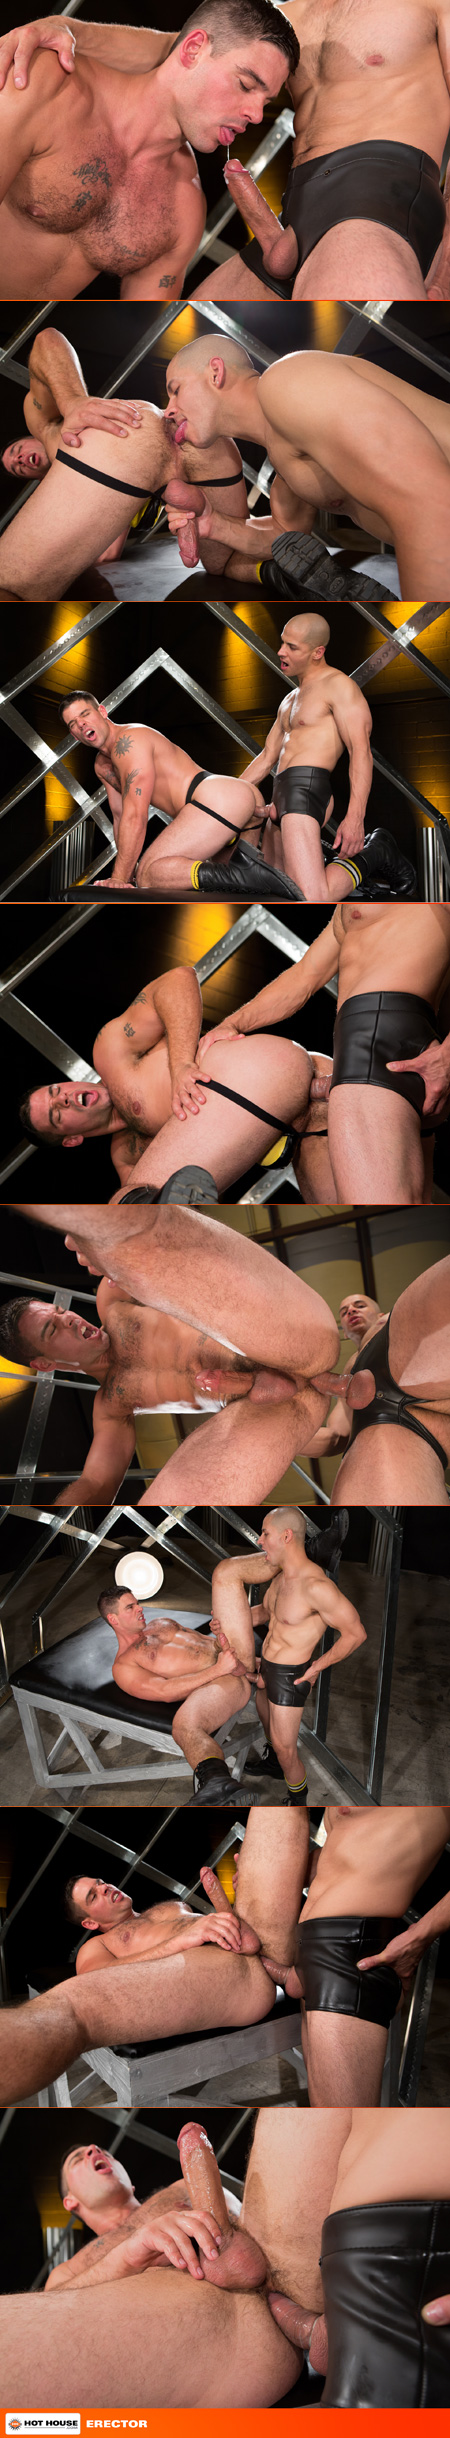 Hairy muscle hunk being fucked by a hung Latino in fetish gear.